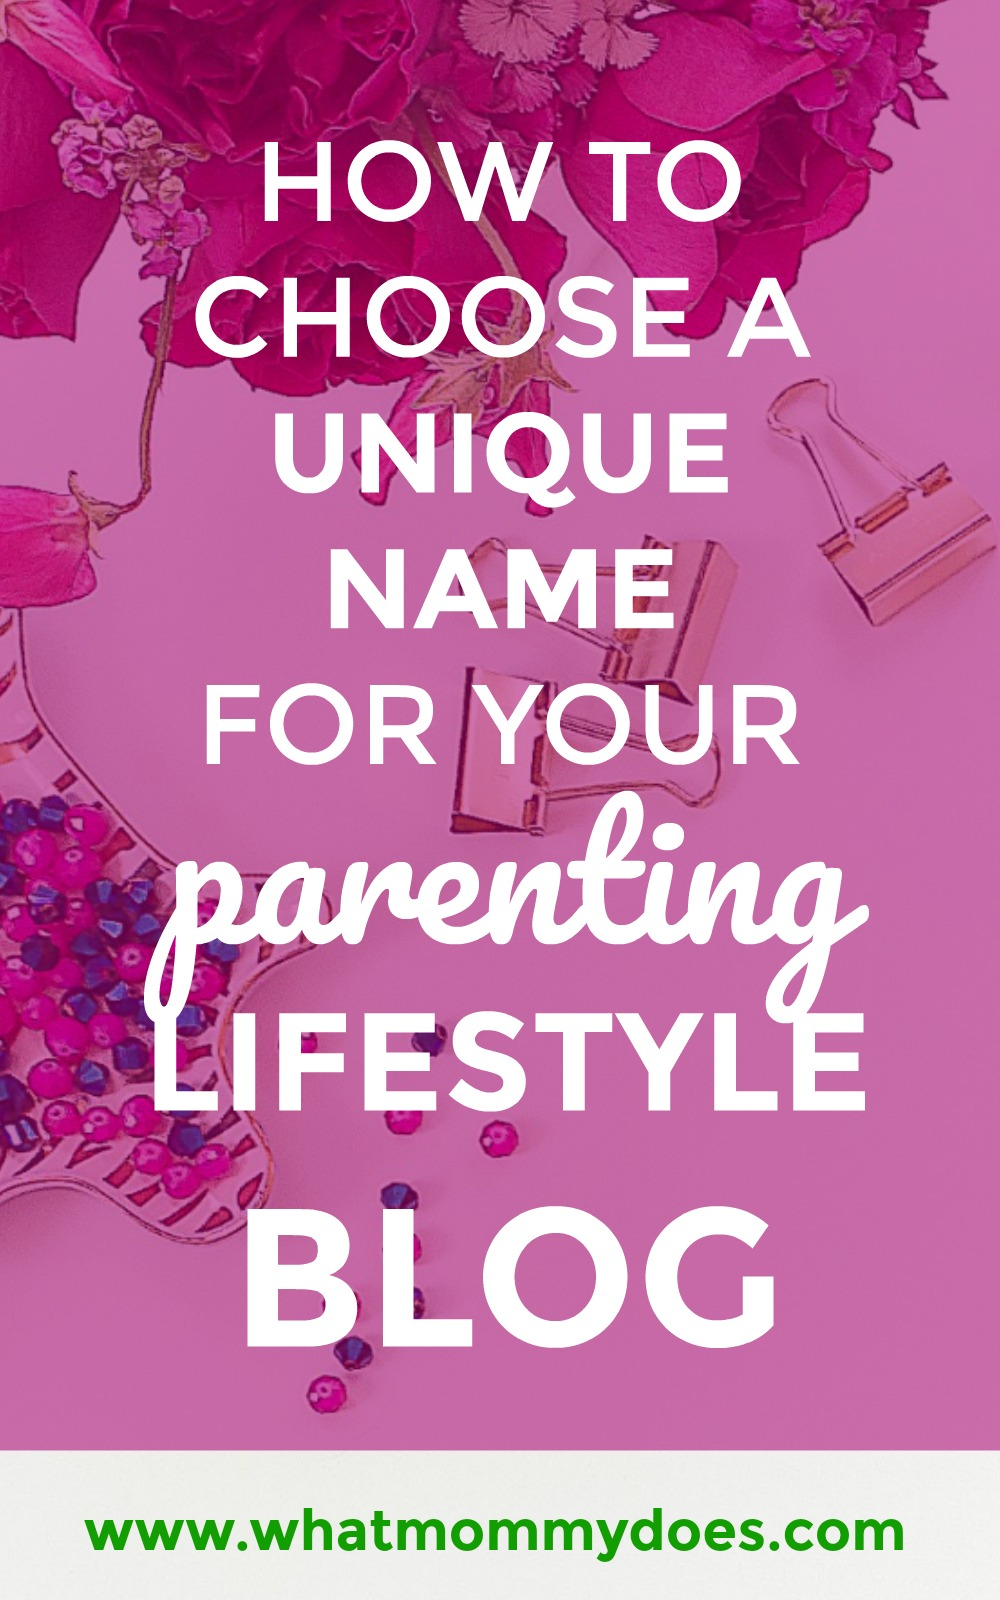 Every time I think I've found the best name for my parenting lifestyle blog, I have to go back to the drawing board because it's taken! I couldn't think of enough alternatives until I read this. It's a great tutorial for helping you decide on a unique blog name that works for your niche. | how to start a lifestyle blog for extra cash on the side, step-by-step blogging tutorials, how to pick a perfect blog name